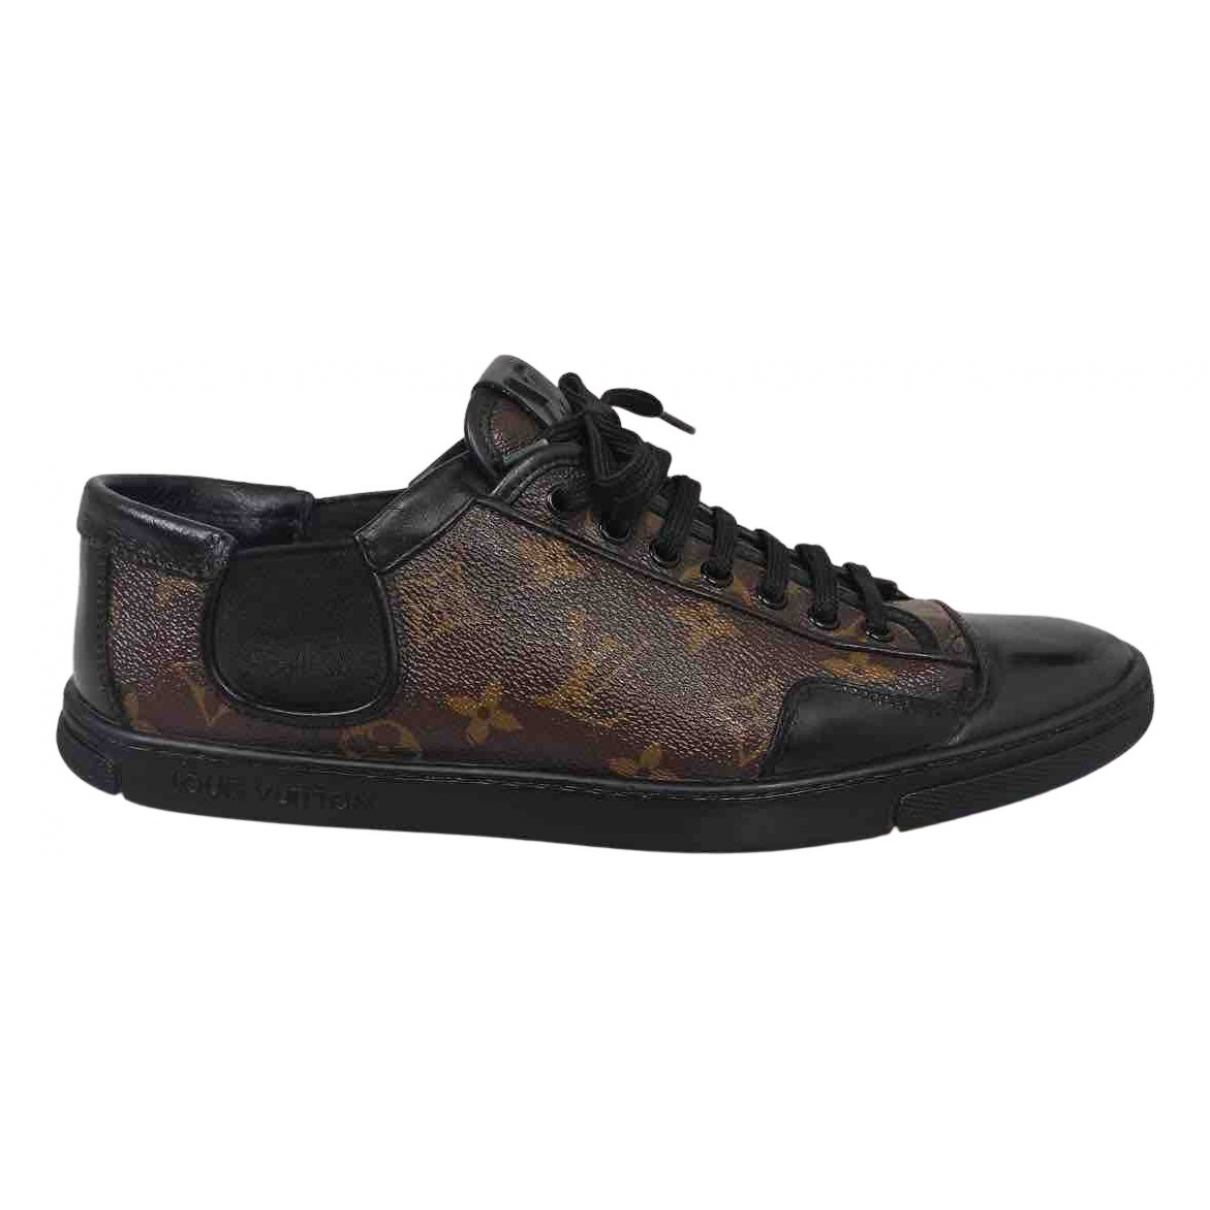 Louis Vuitton N Brown Cloth Trainers for Men 42 EU